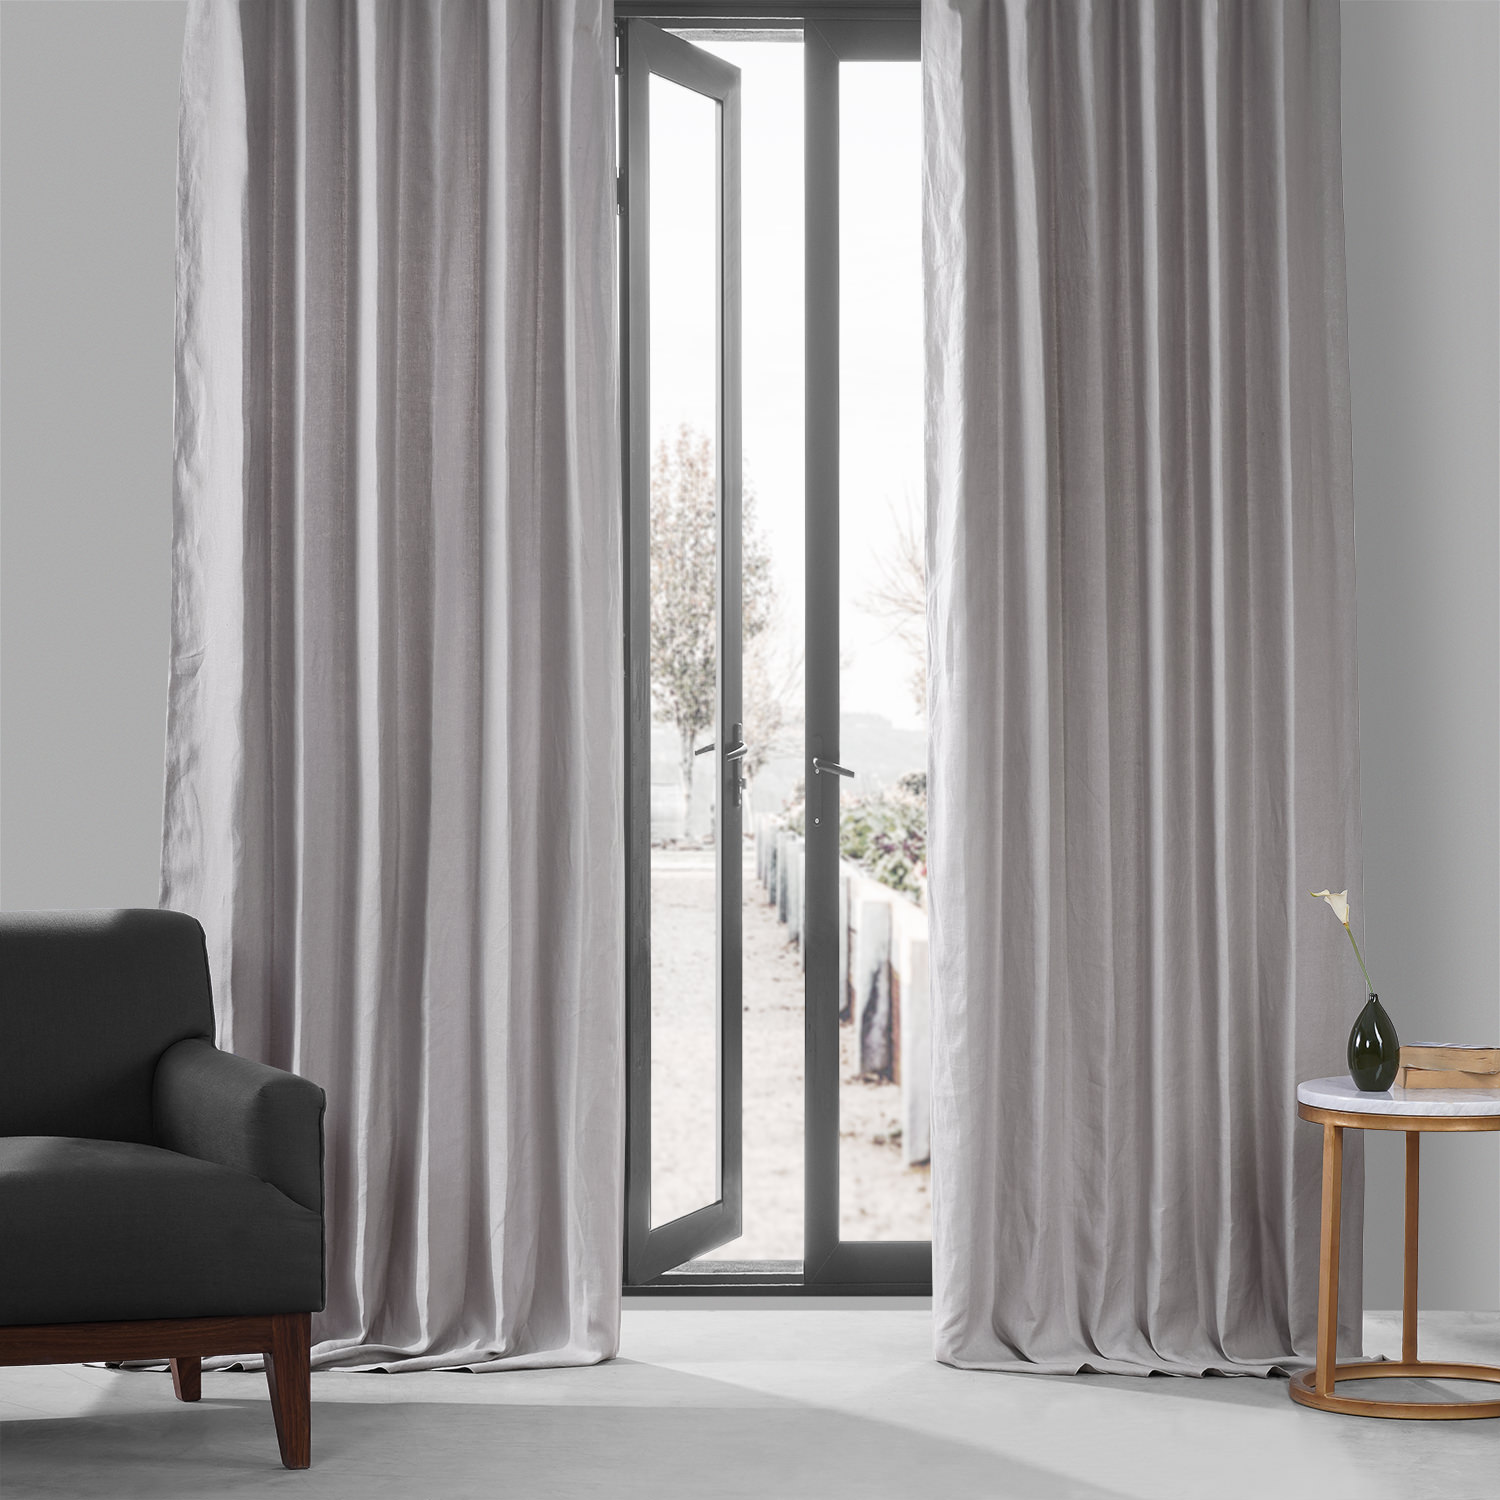 buy earl grey french linen curtain  half price drapes - earl grey french linen curtain